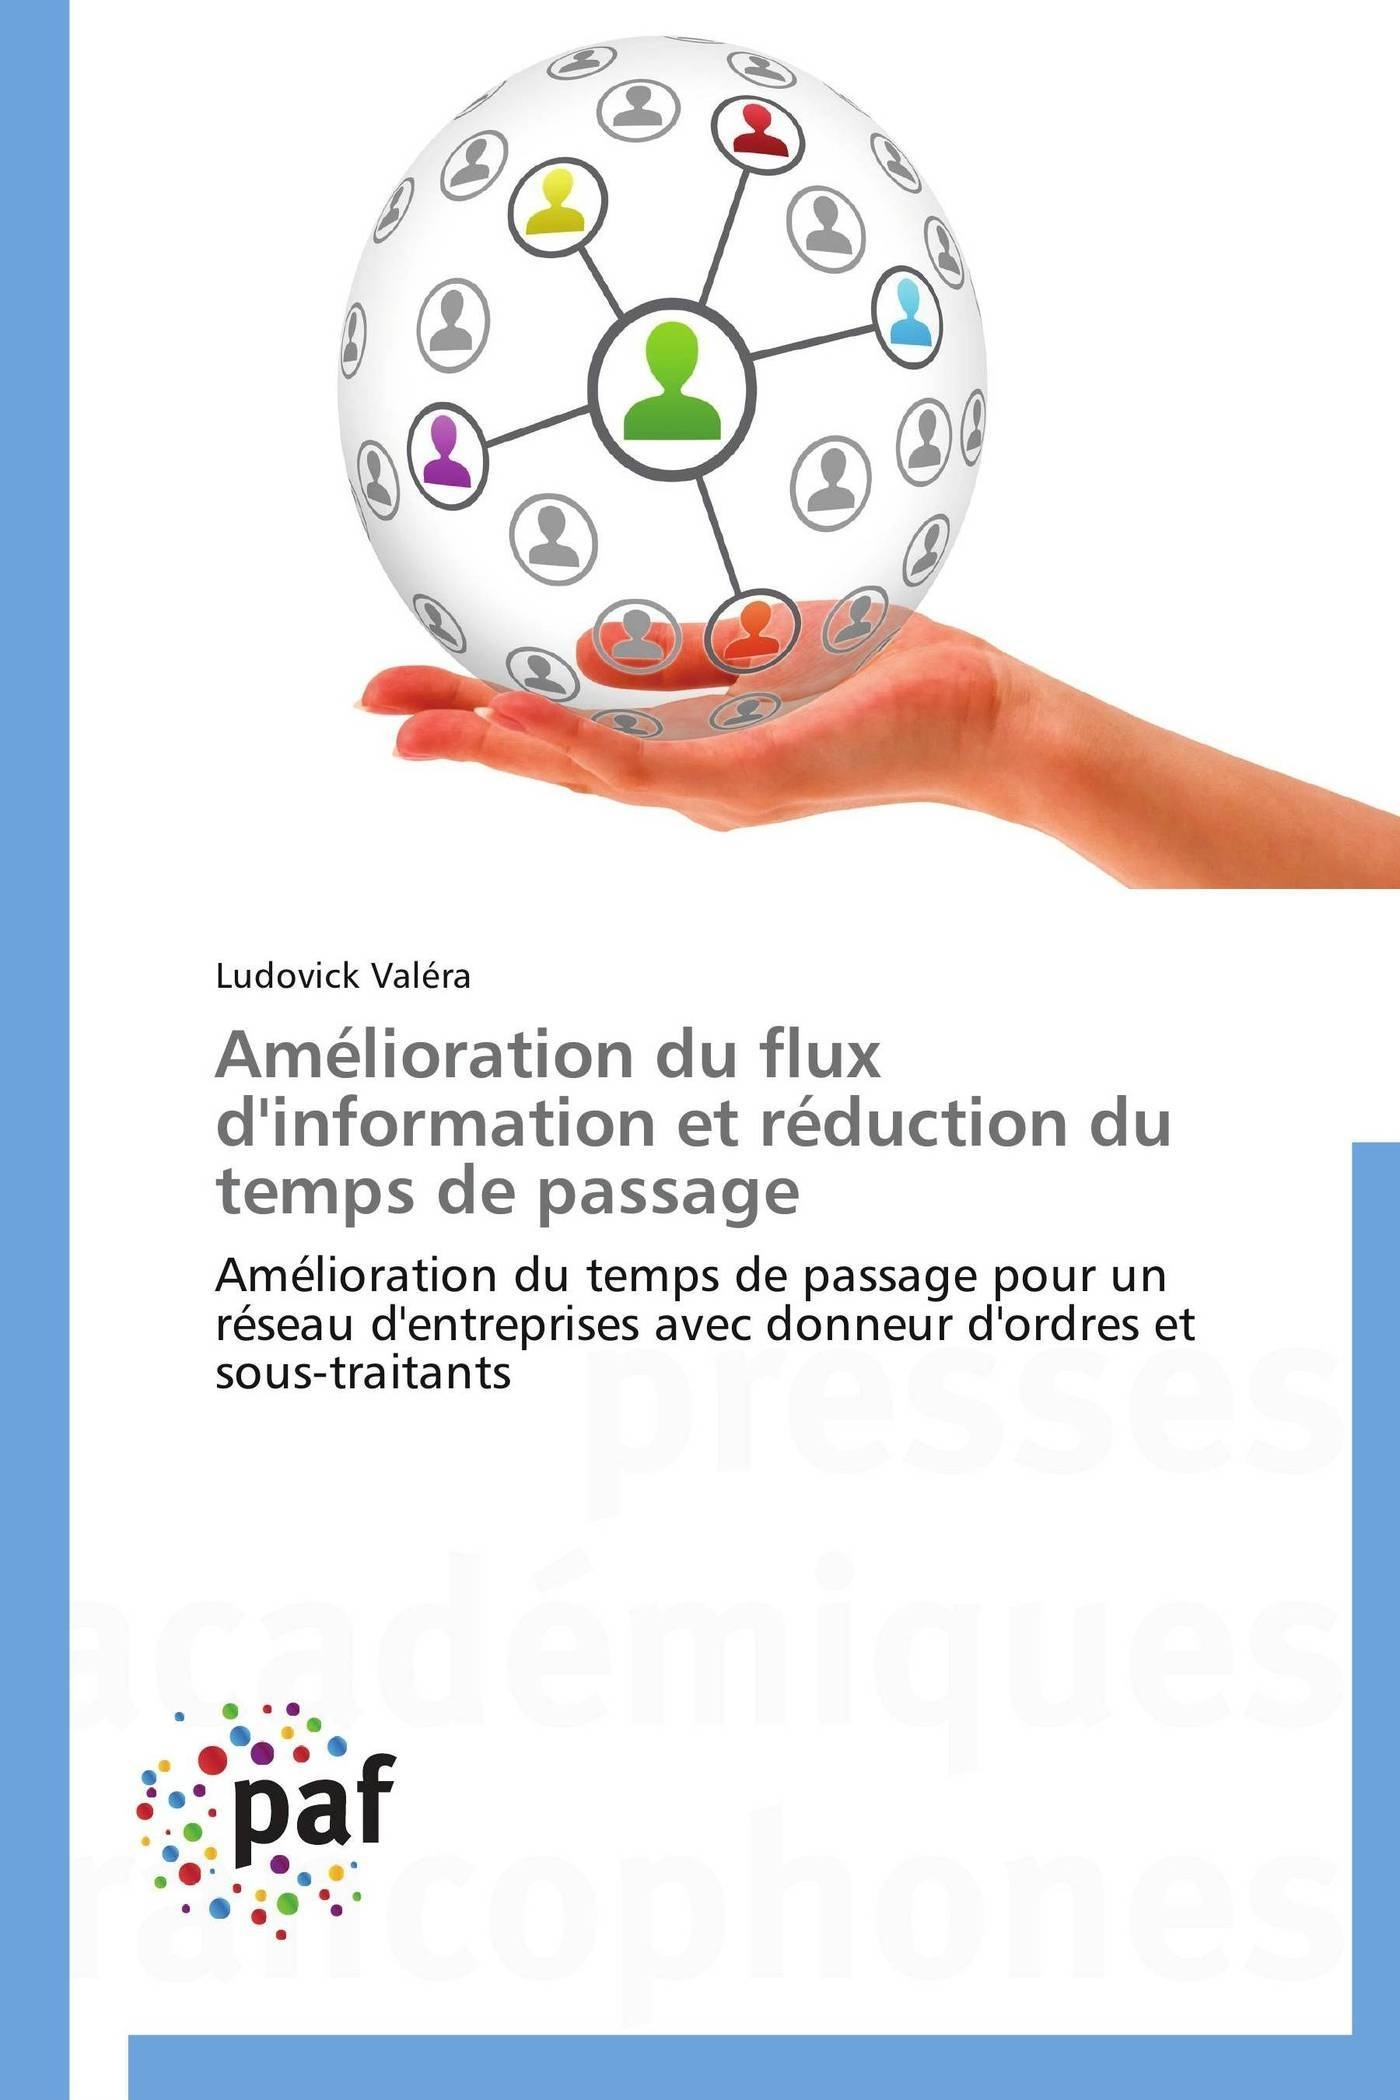 AMELIORATION DU FLUX D'INFORMATION ET REDUCTION DU TEMPS DE PASSAGE